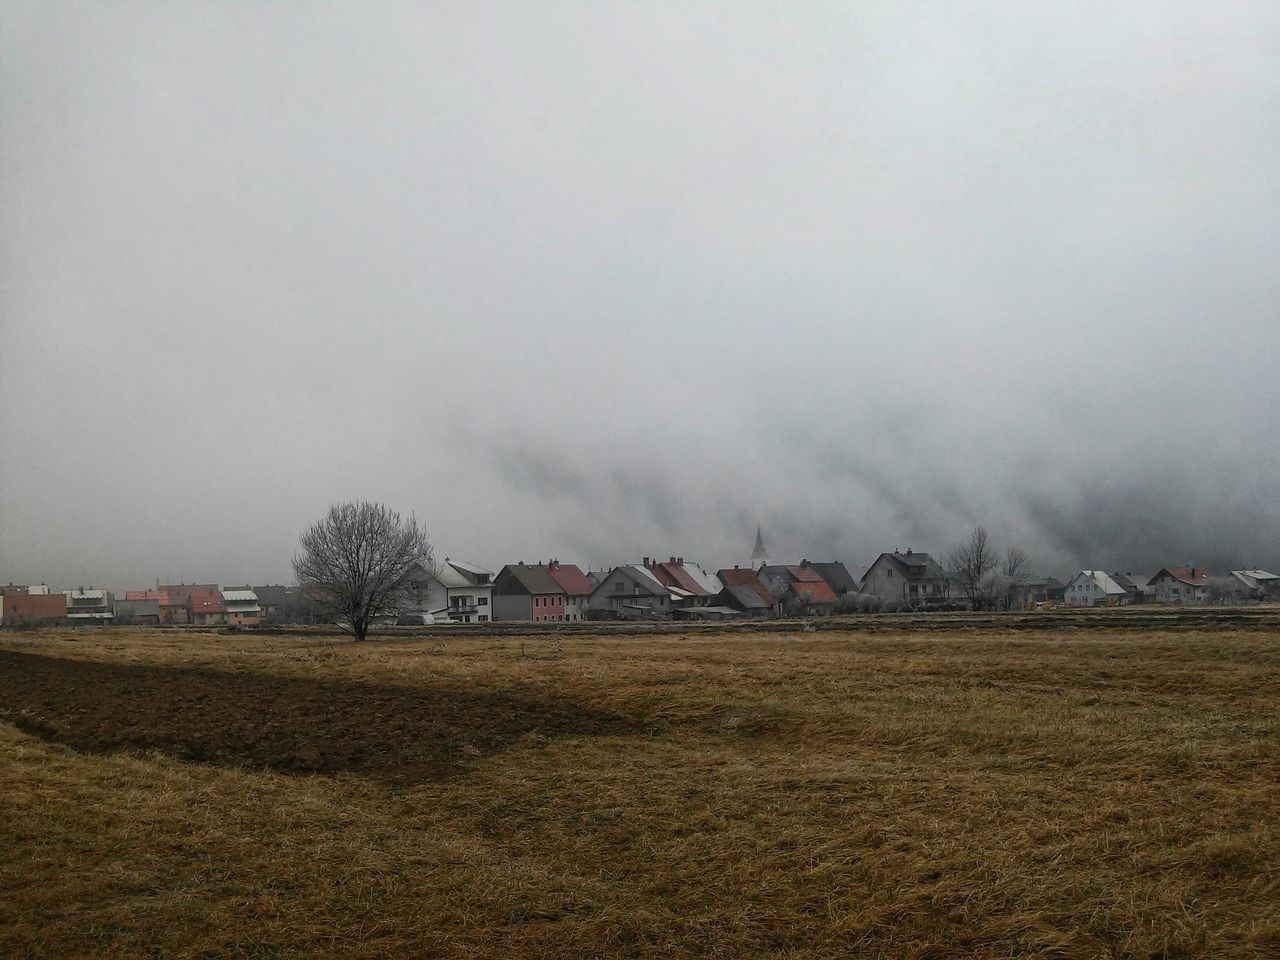 Houses On Field Against Sky During Foggy Weather